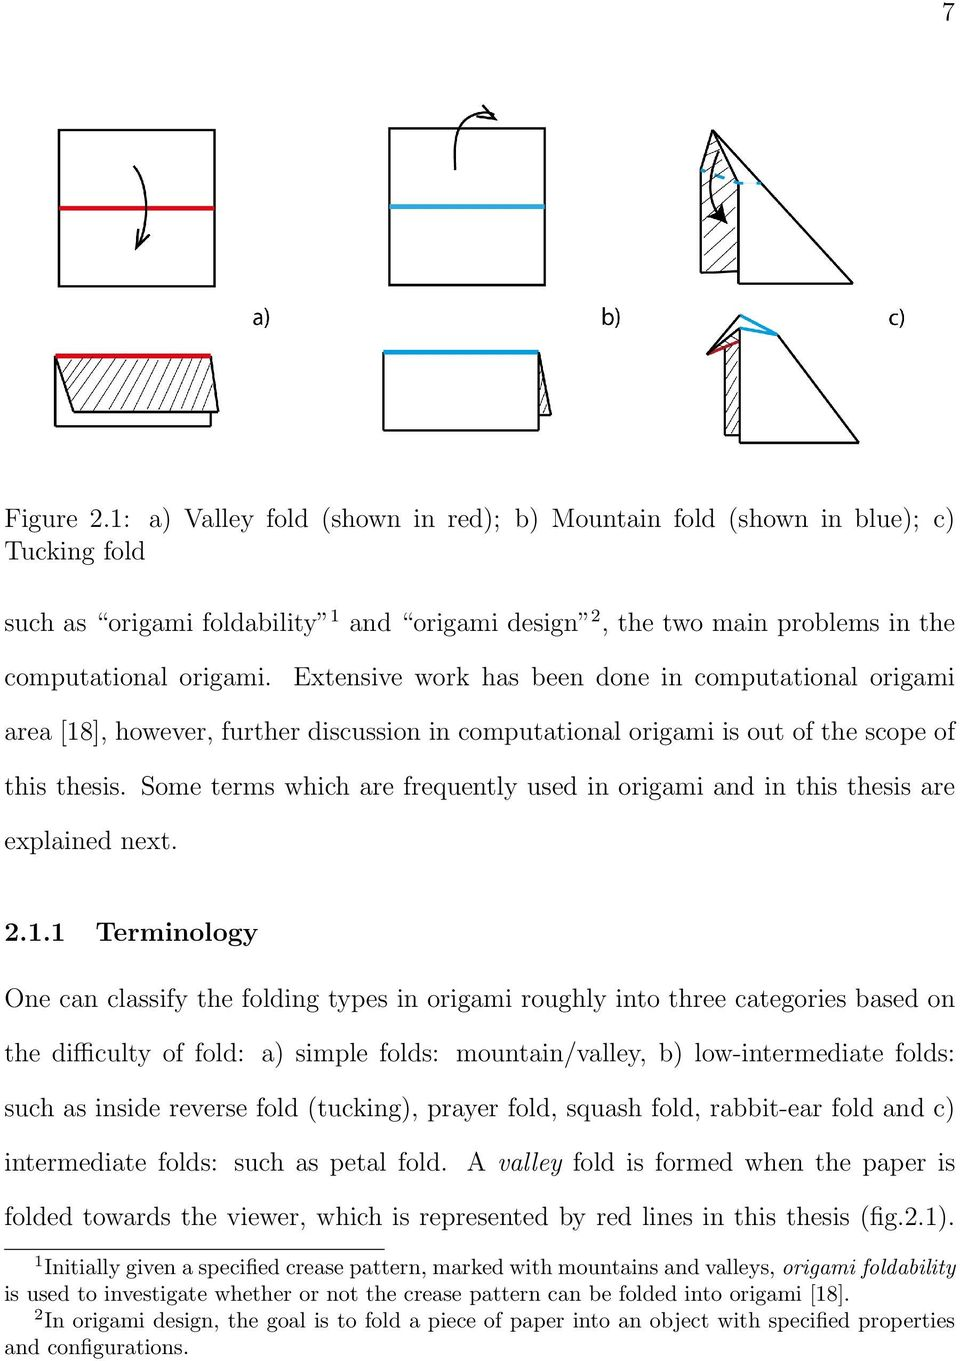 The University Of Calgary Origami Kirigami And Modeling More Information About Dog Diagram On Site Http Static Some Terms Which Are Frequently Used In This Thesis Explained Next